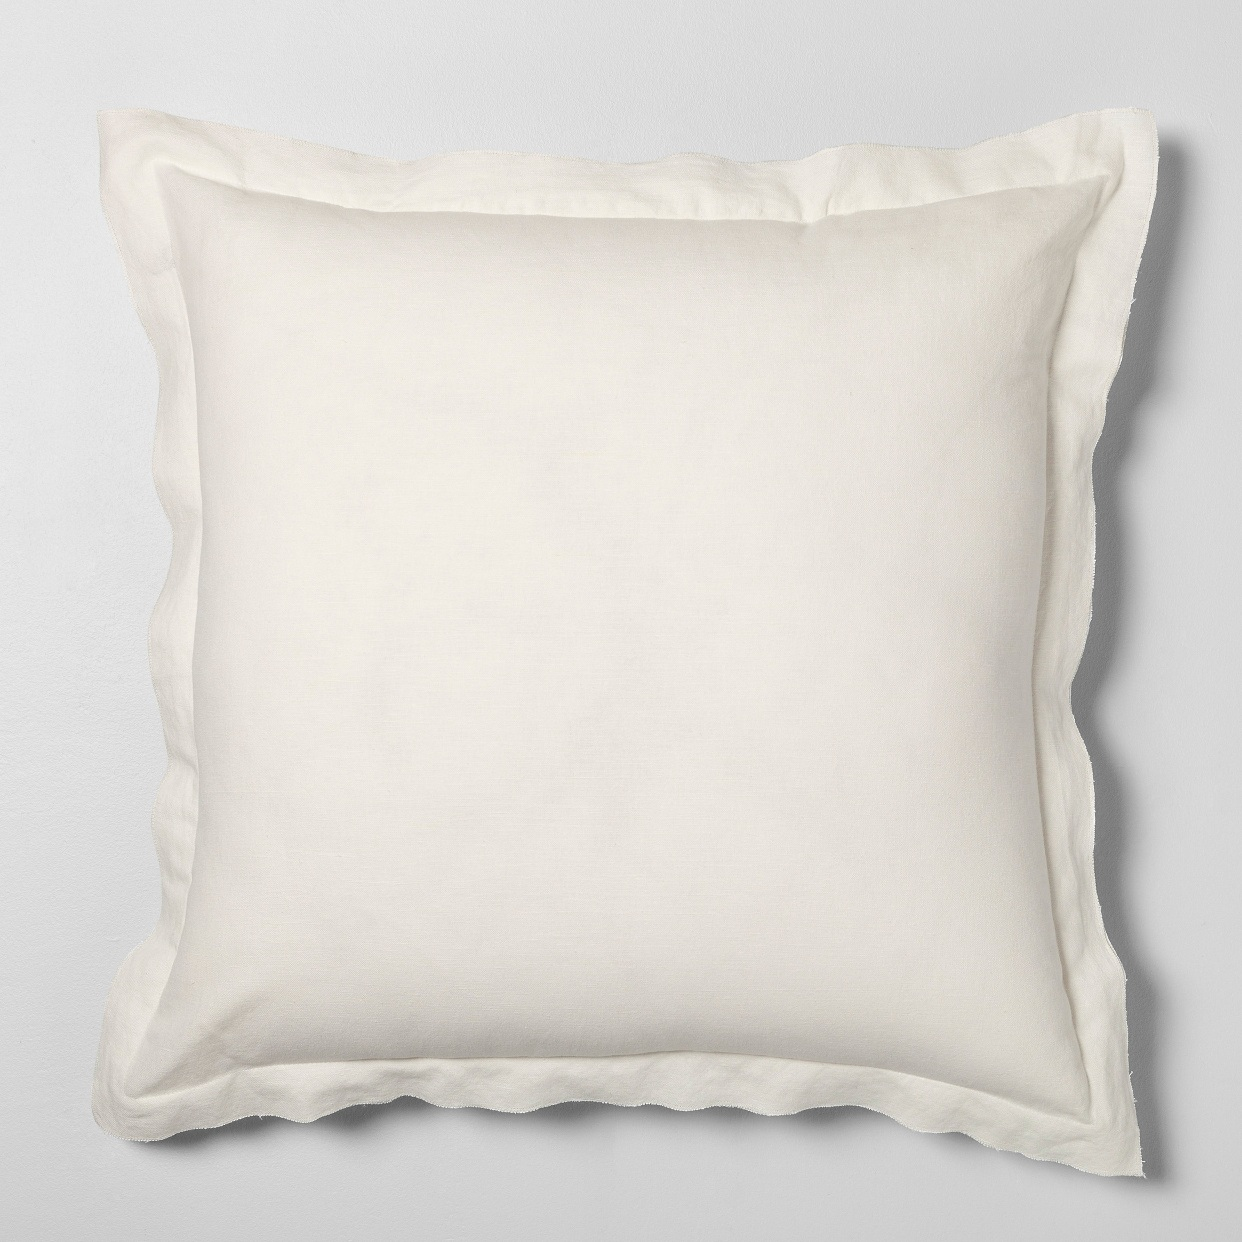 - Crisp white and cozy. The perfect new addition to our family room for summer!Find it here.